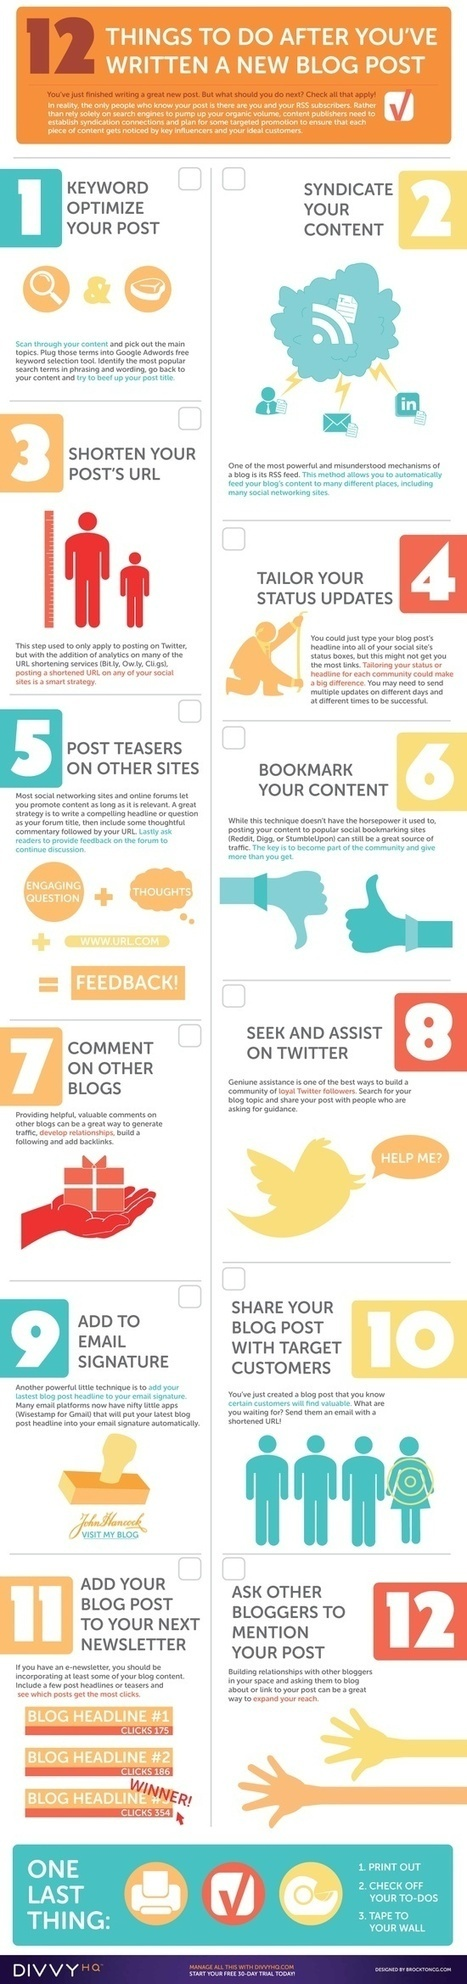 Infographie : Things to do after youve posted a new #blog post | Geeks | Scoop.it